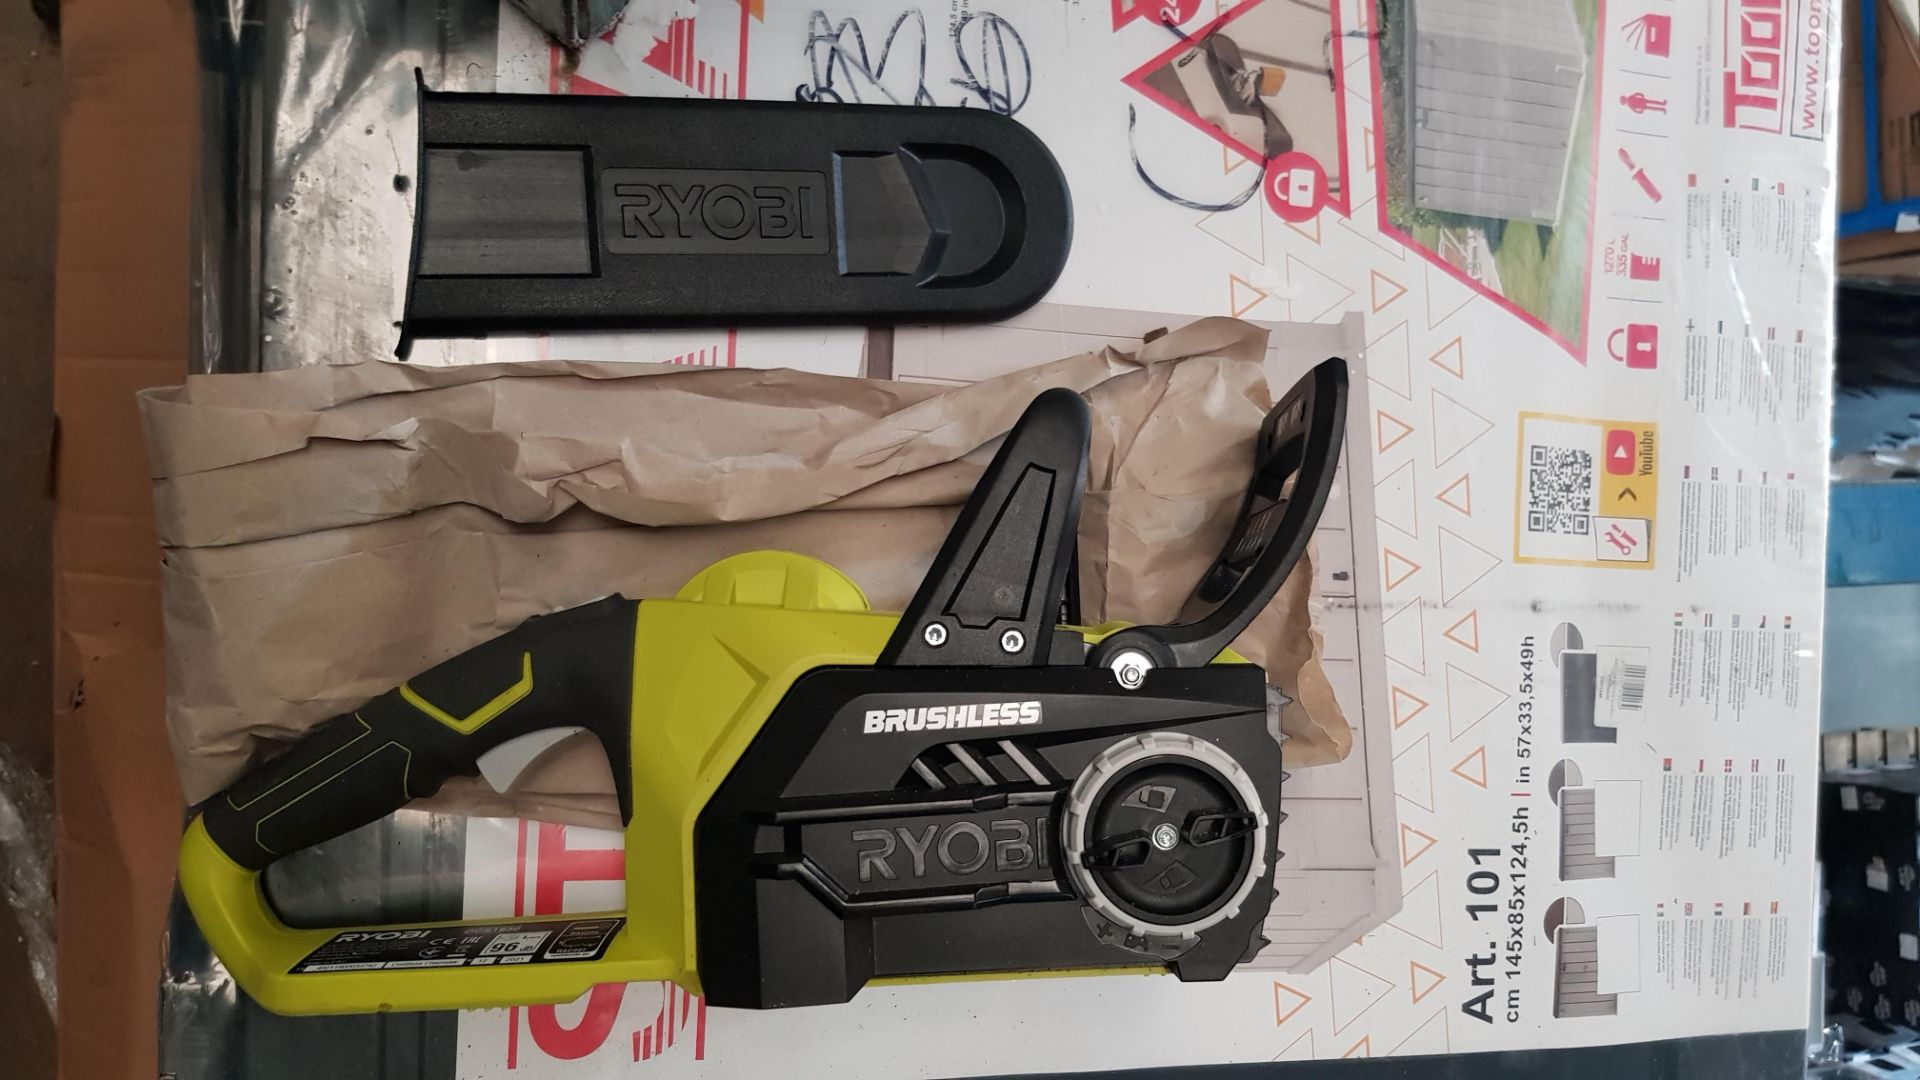 (P9) 1x Ryobi One+ Brushless 18V Cordless Chainsaw RRP £160. (With Battery & Charger) - Image 7 of 8